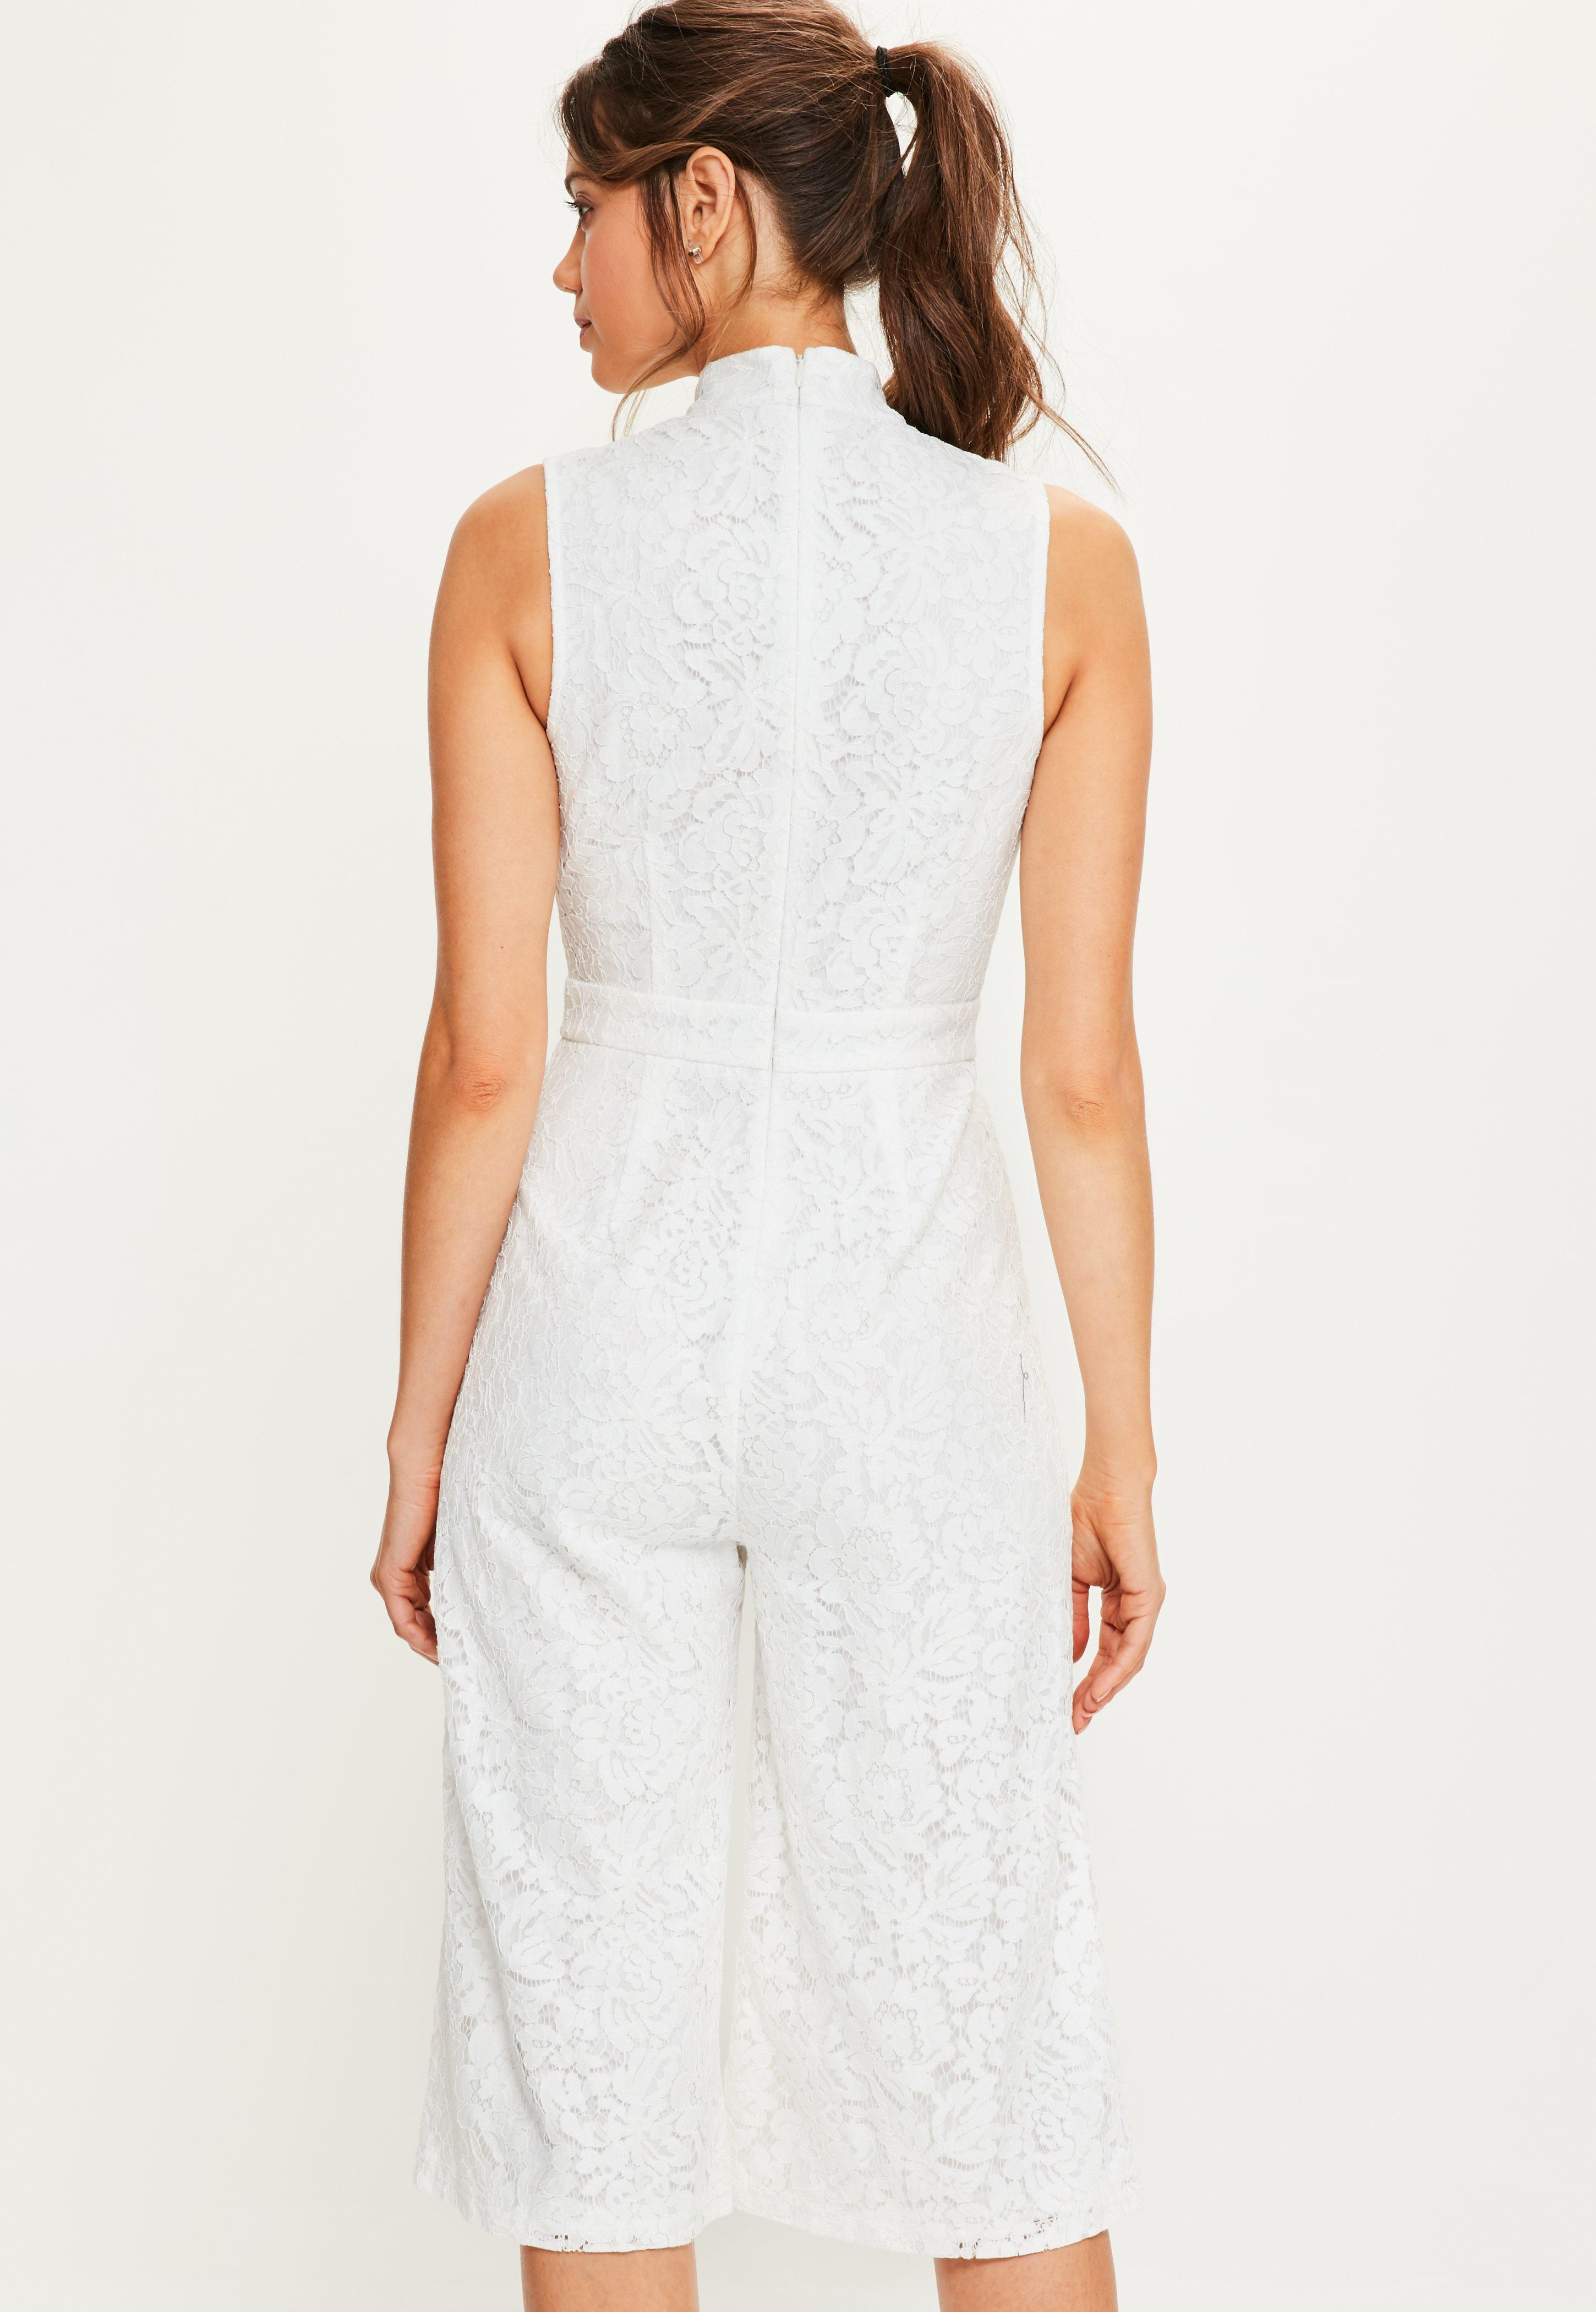 bea9e55287de Lyst - Missguided White High Neck Lace Culotte Jumpsuit in White